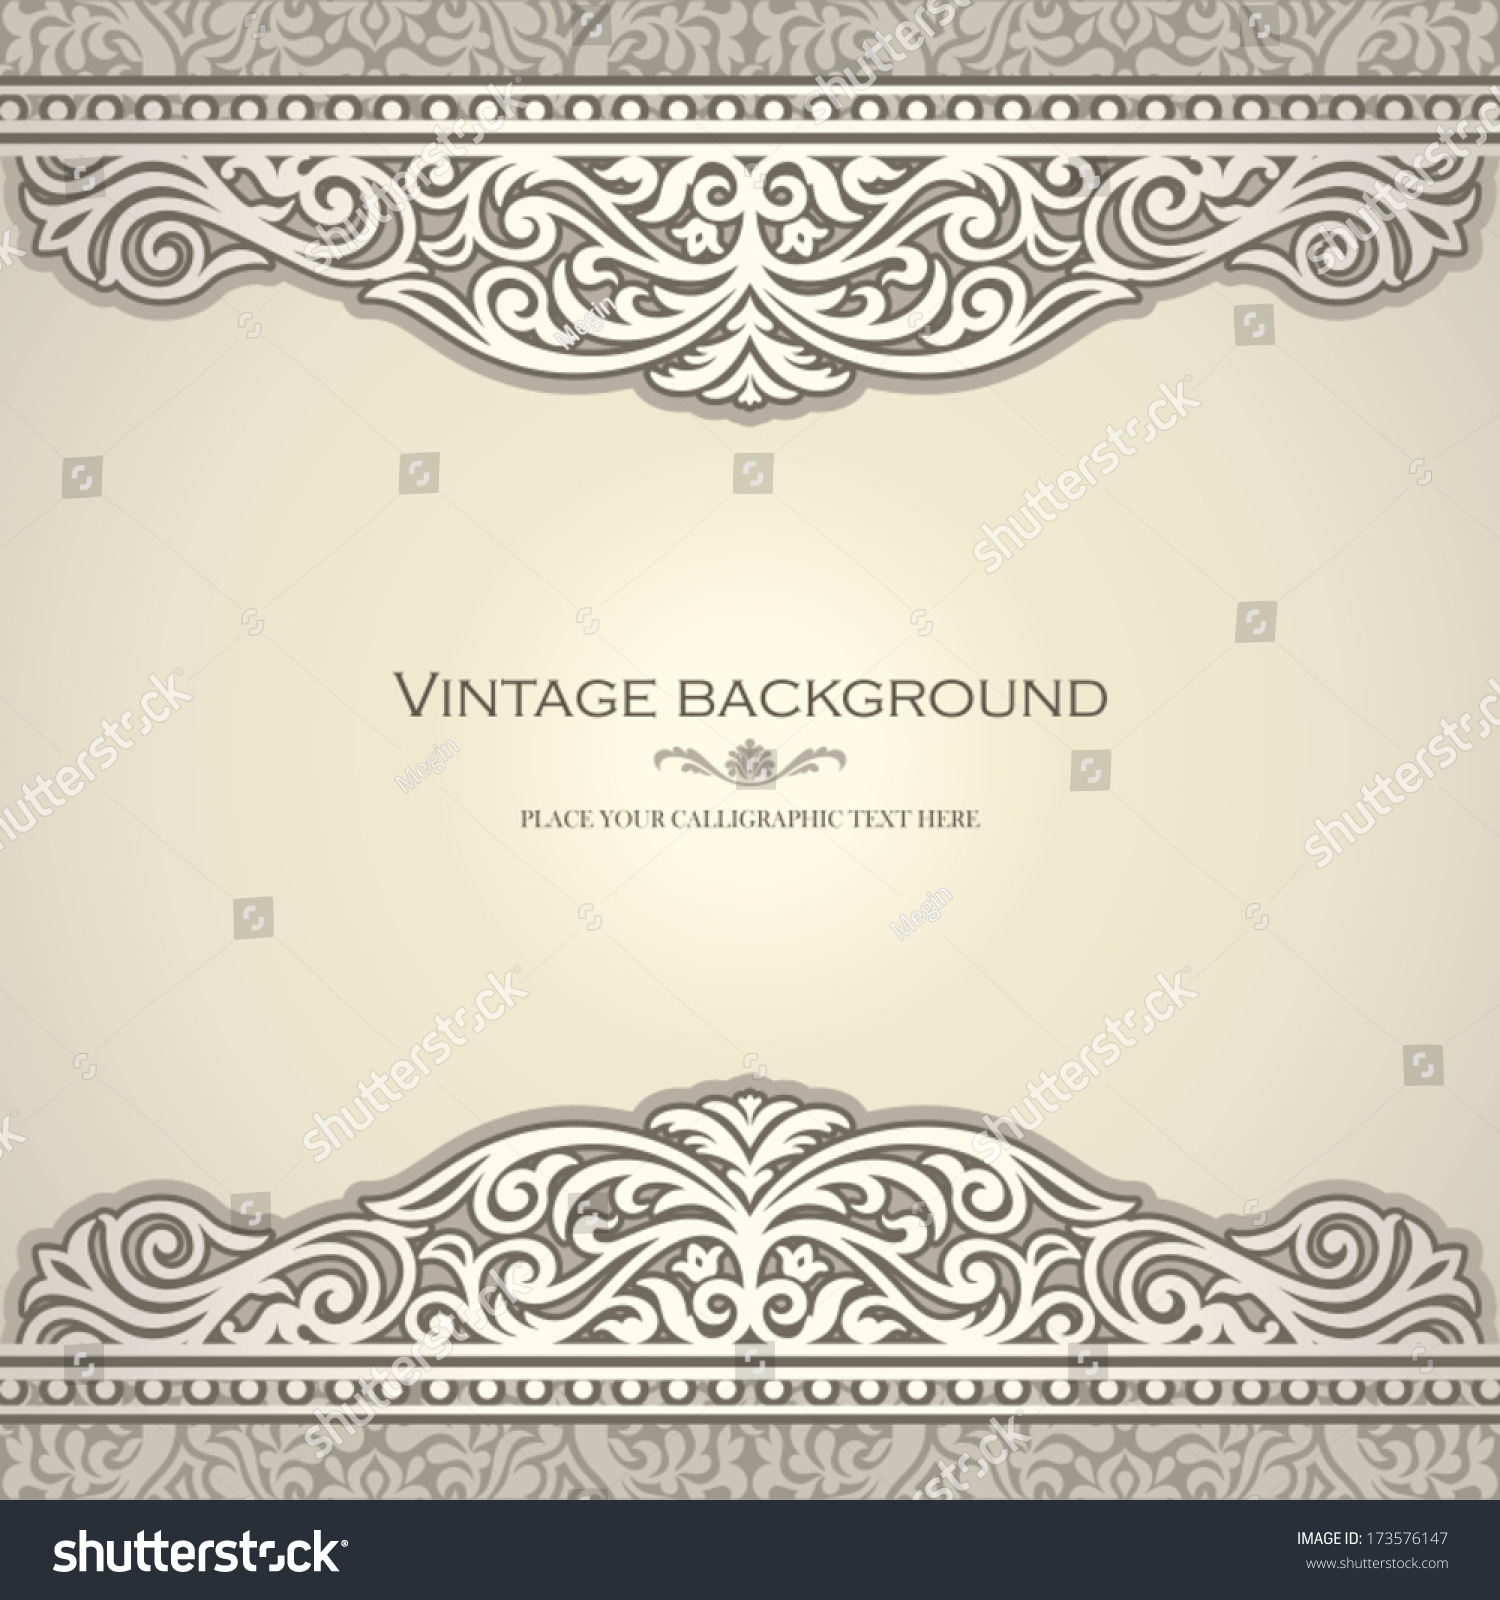 Vintage Book Cover Design Template Free : Vintage background design elegant book cover stock vector